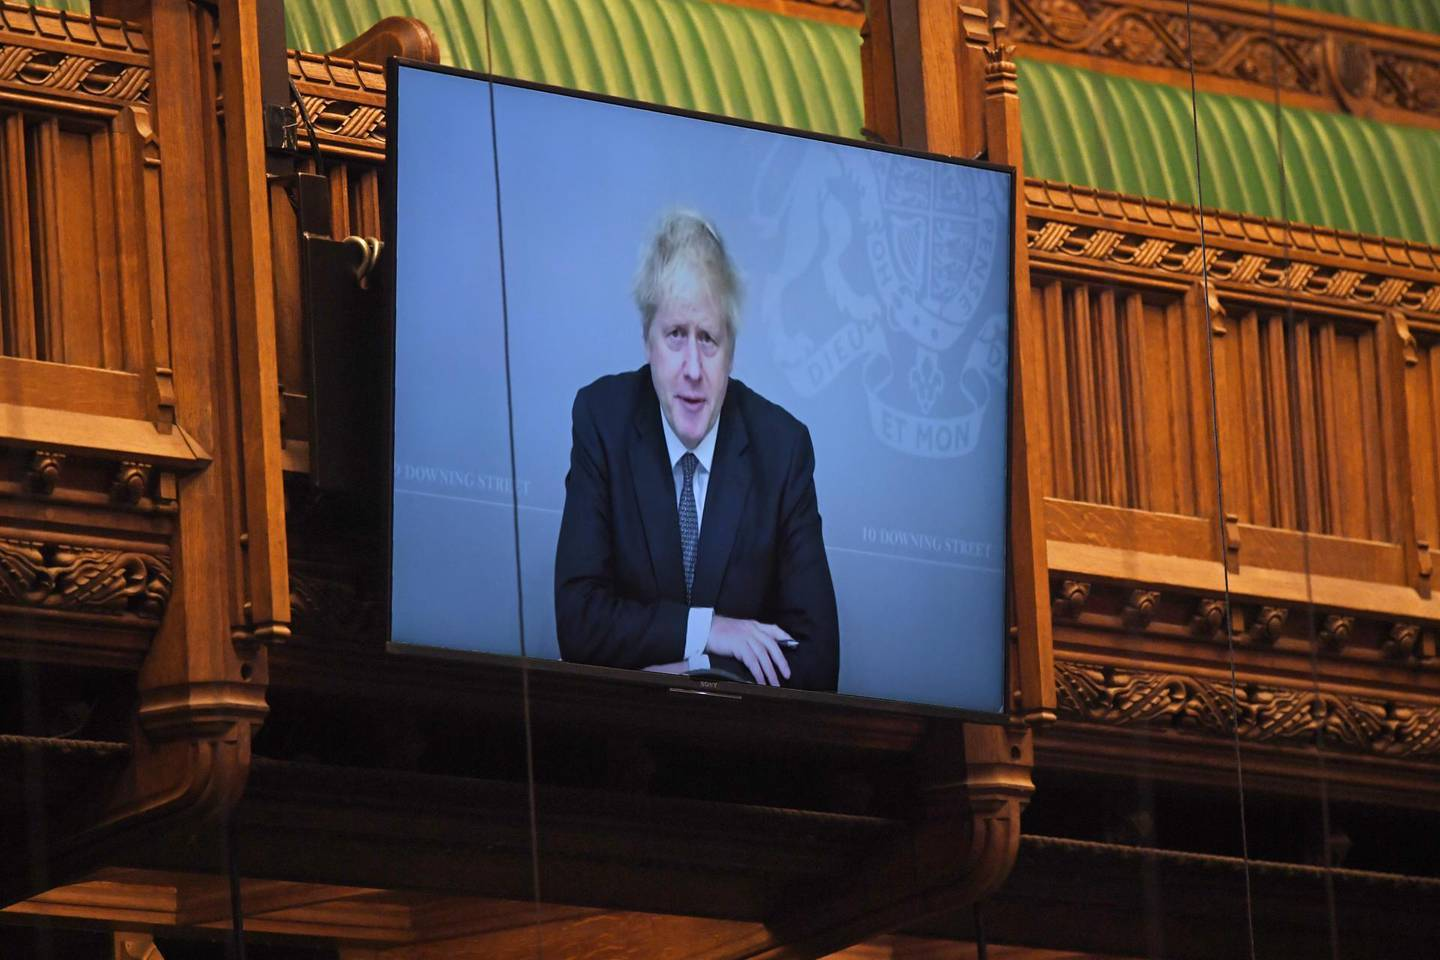 epa08827833 A handout photo made available by the UK Parliament shows Britain's Prime Minister Boris Johnson on a large screen as he takes part virtually in the Prime Minister's Questions (PMQs) in the House of Commons at Parliament in London, Britain, 18 November 2020. British Prime Minister Boris Johnson, who battled a coronavirus infection earlier this year, is self-isolating after having been exposed to the coronavirus again  EPA/JESSICA TAYLOR / UK PARLIAMENT / HANDOUT MANDATORY CREDIT: JESSICA TAYLOR / UK PARLIAMENT HANDOUT EDITORIAL USE ONLY/NO SALES